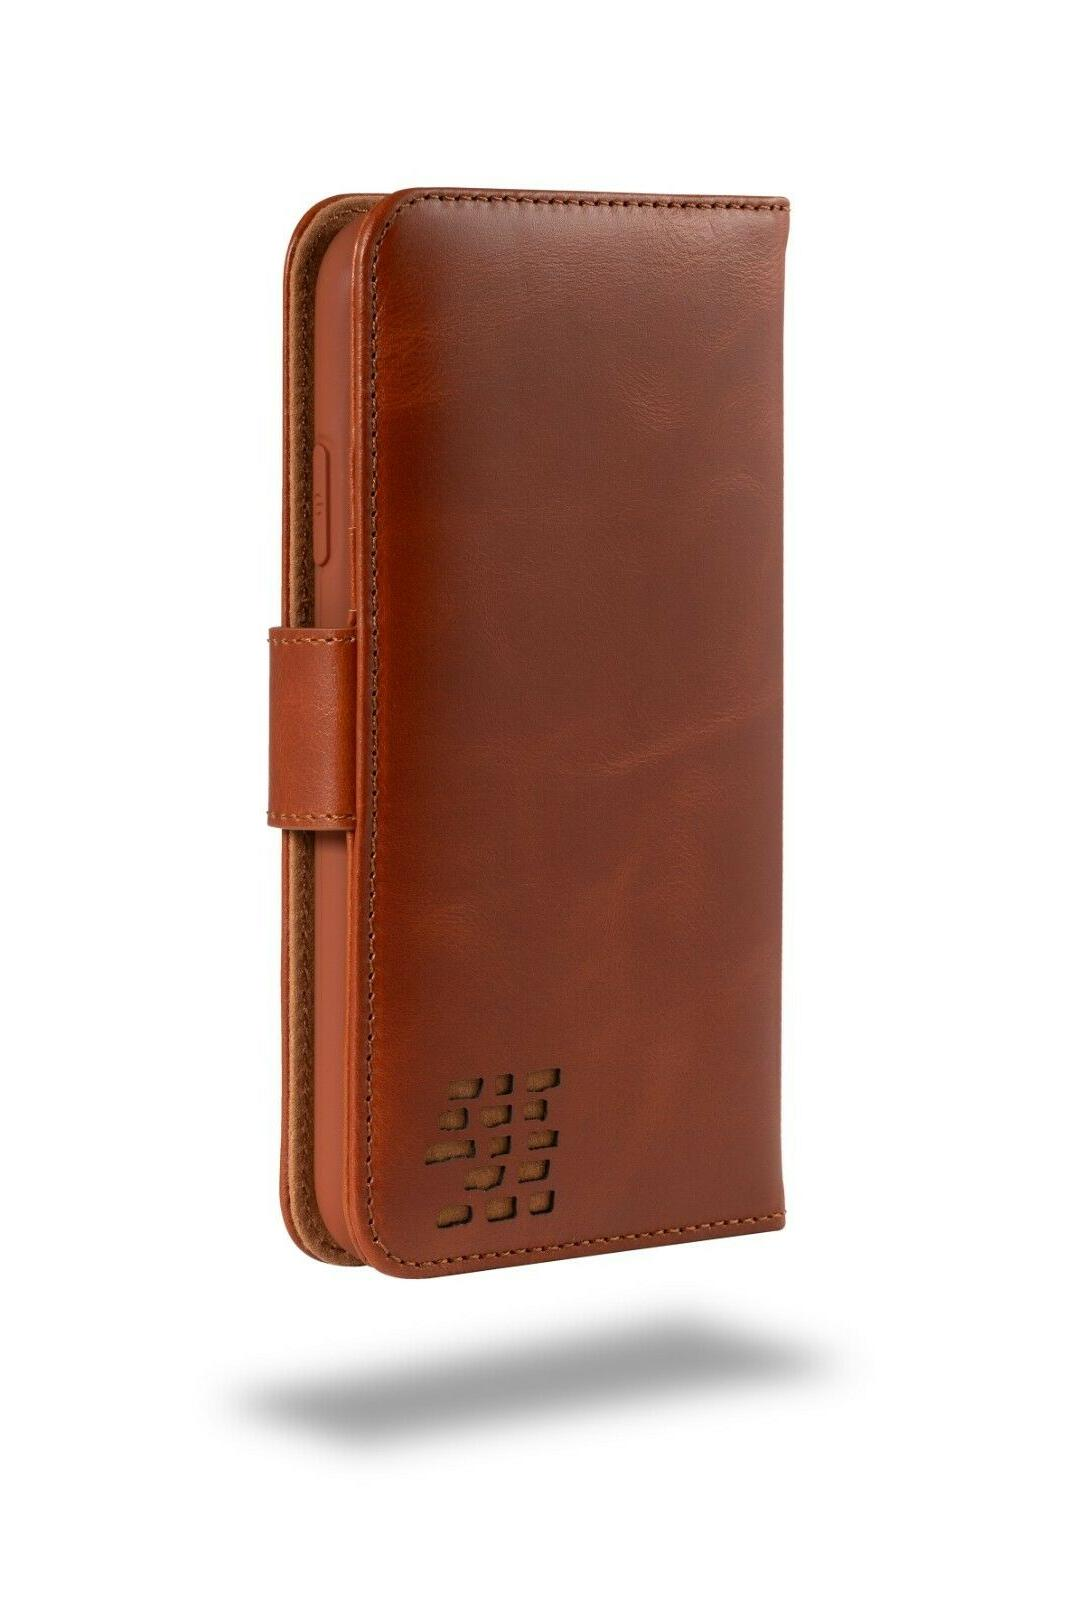 iPhone Leather Wallet Phone Case Many Unique